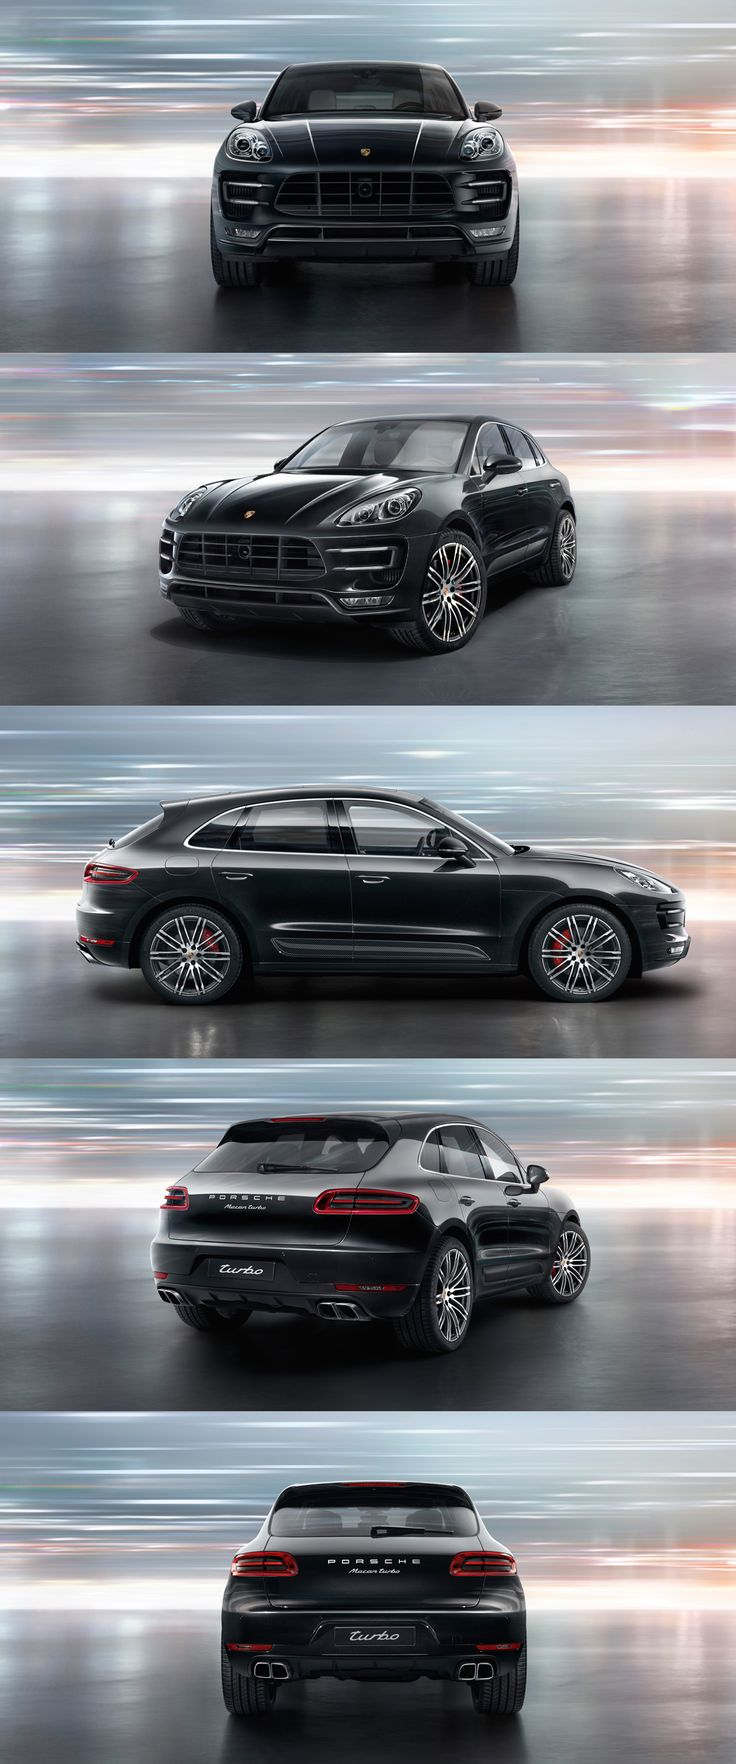 Porsche macan every design detail radiates one thing intensely sporty style combined fuel consumption in accordance with eu emissions g km